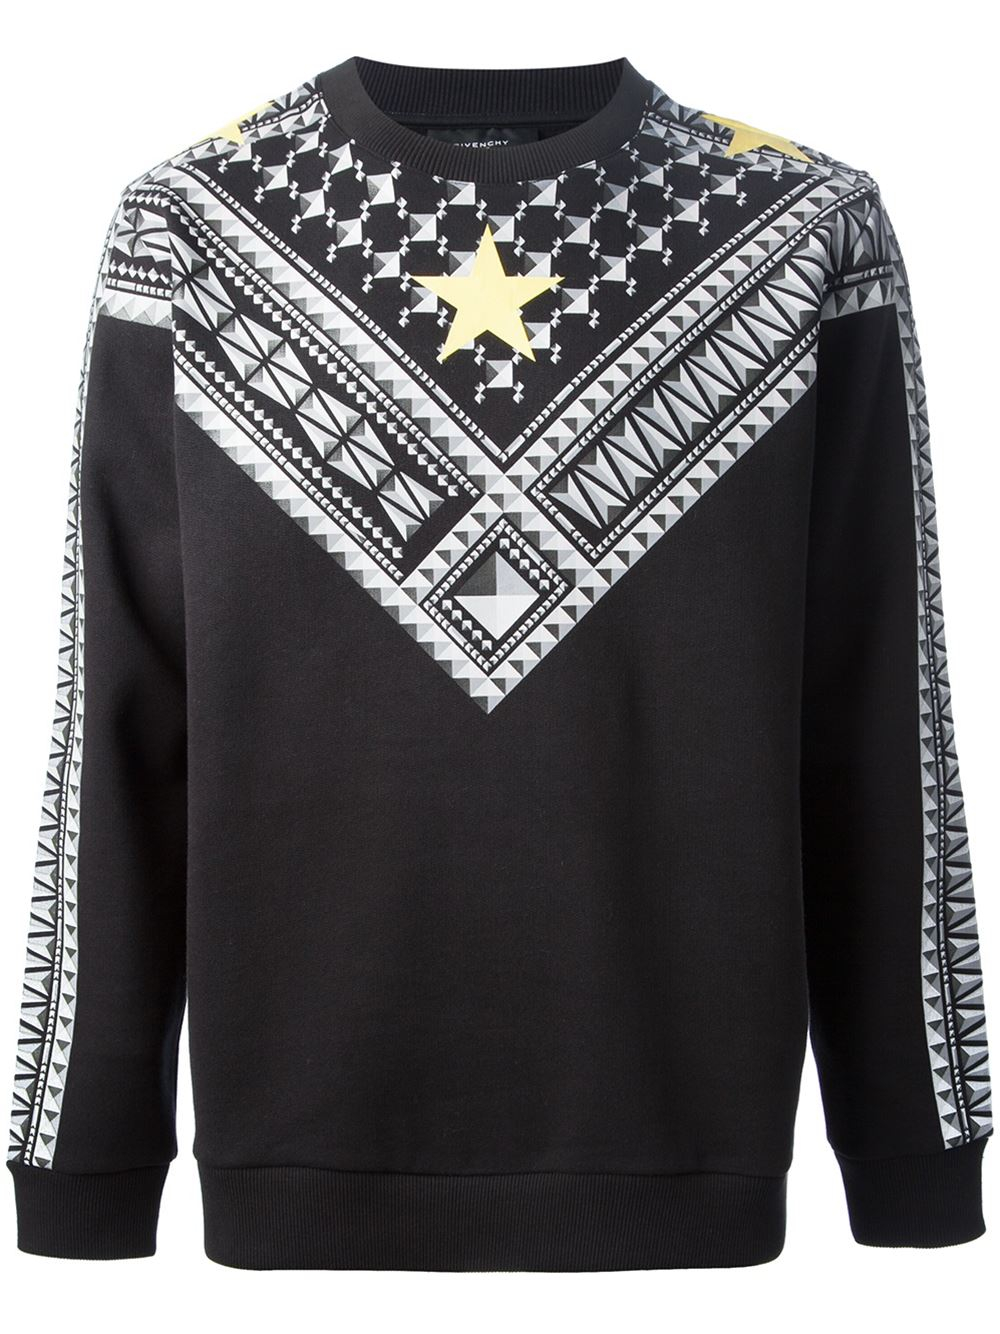 givenchy star checked sweater in black for men lyst. Black Bedroom Furniture Sets. Home Design Ideas